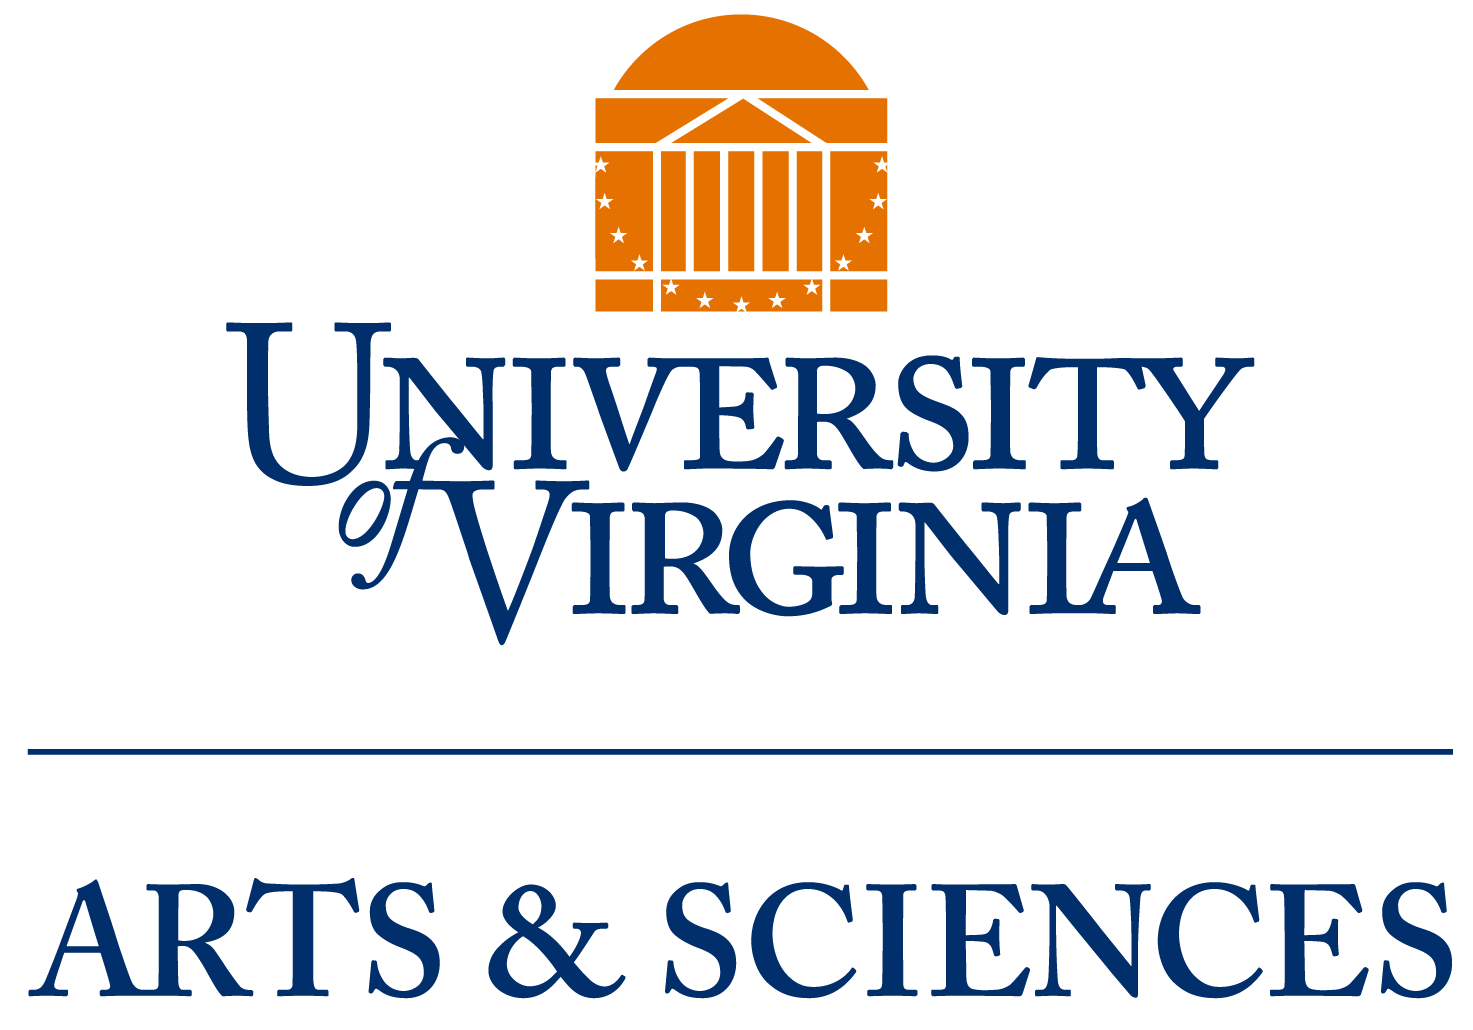 University of Virginia Arts & Sciences